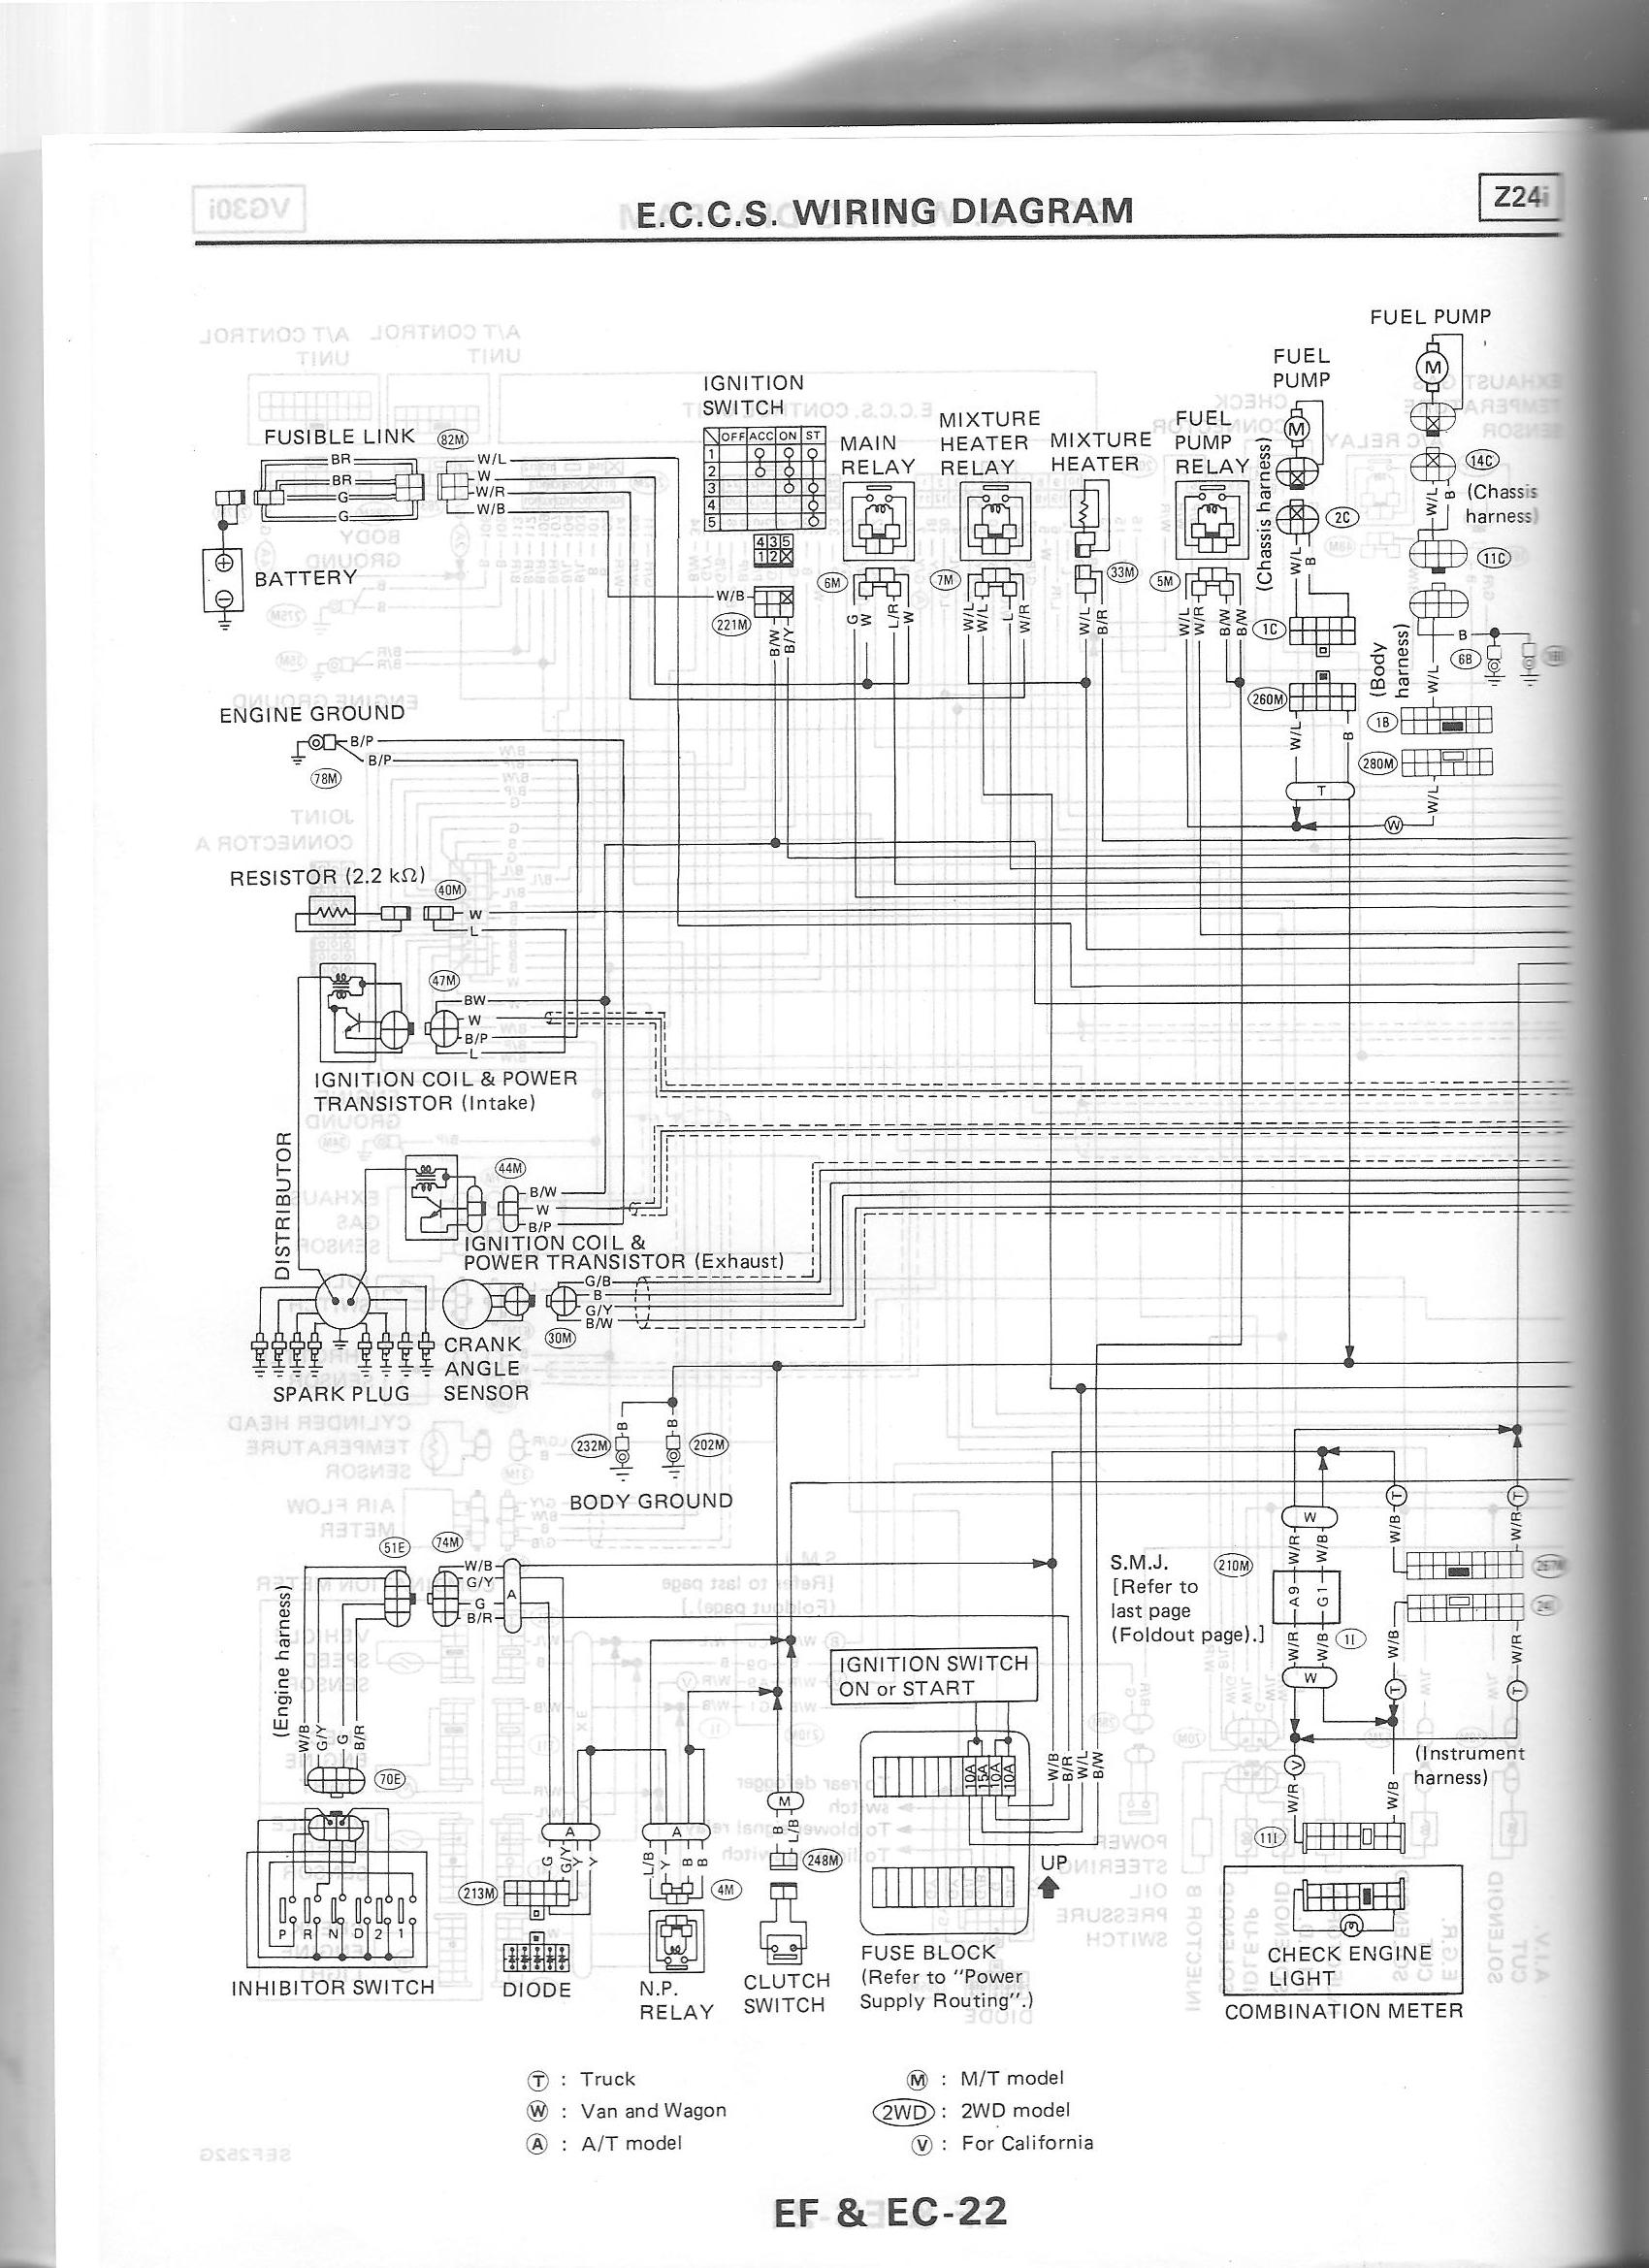 wiring1_88 nissan nut nissan hardbody wiring diagram at nearapp.co